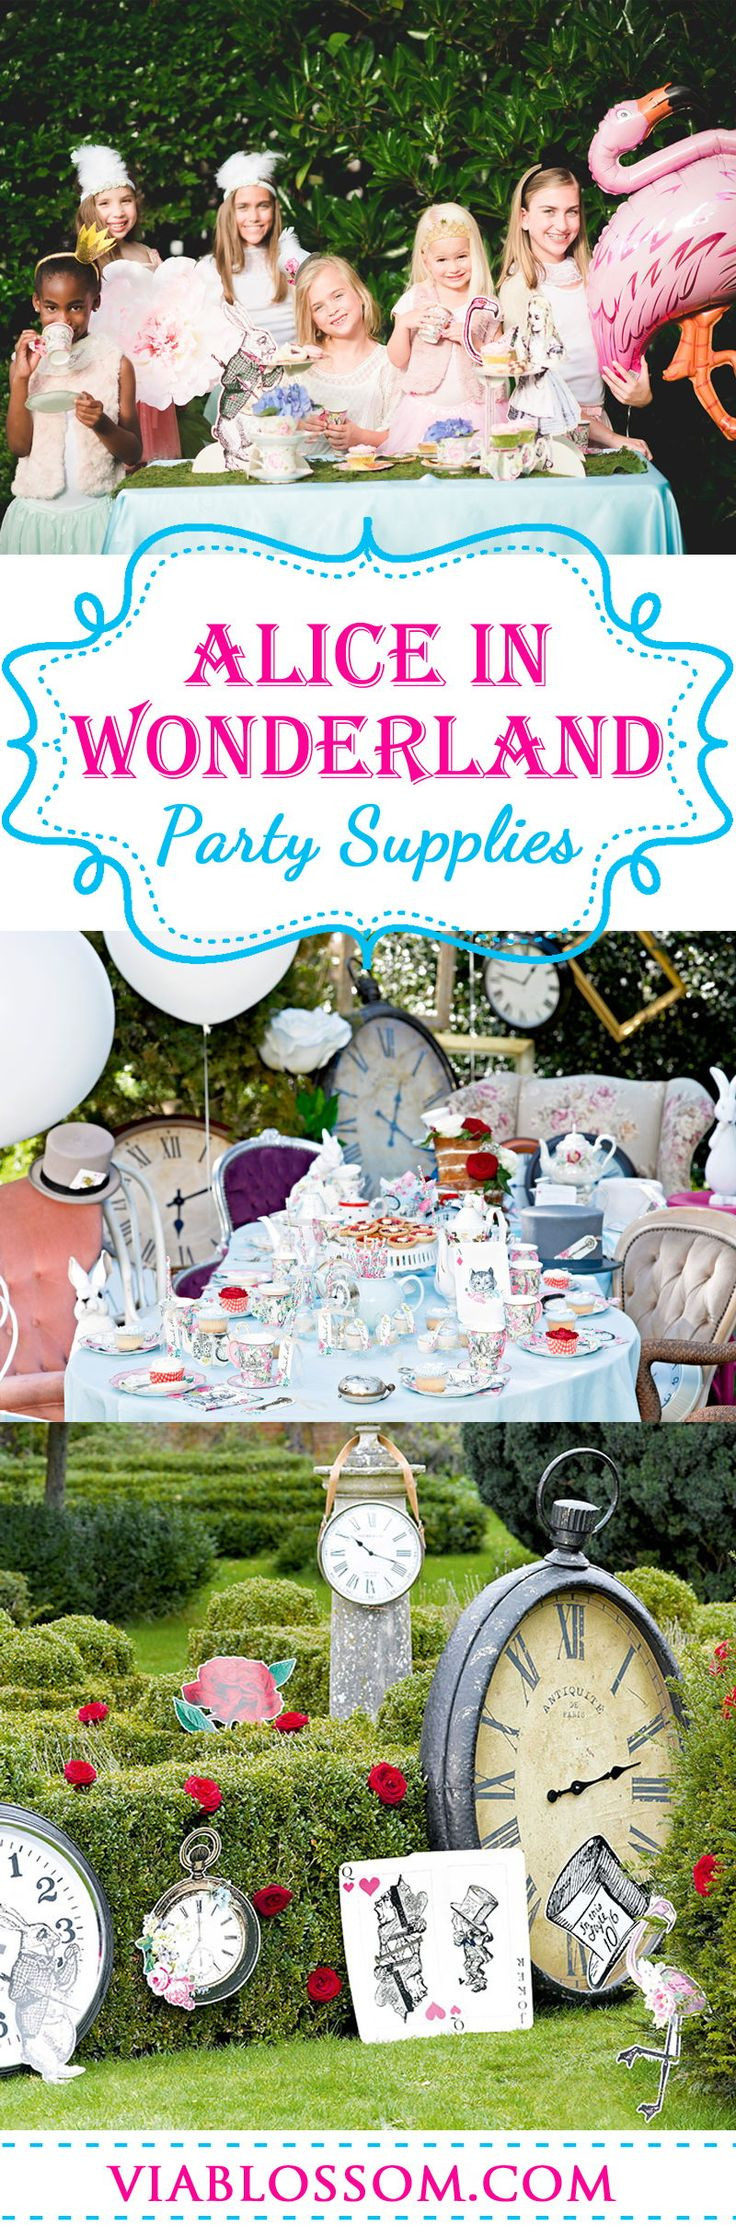 You don't want to miss our Mad Hatter Tea Party Ideas!!!  We have everything you'll need for a dreamy Alice in Wonderland Tea Party!  It's perfect for a Girl Birthday Party or any special celebration! #viablossom #madhatterteaparty #Aliceinwonderlandpartyideas #teapartyideas #madhatterparty